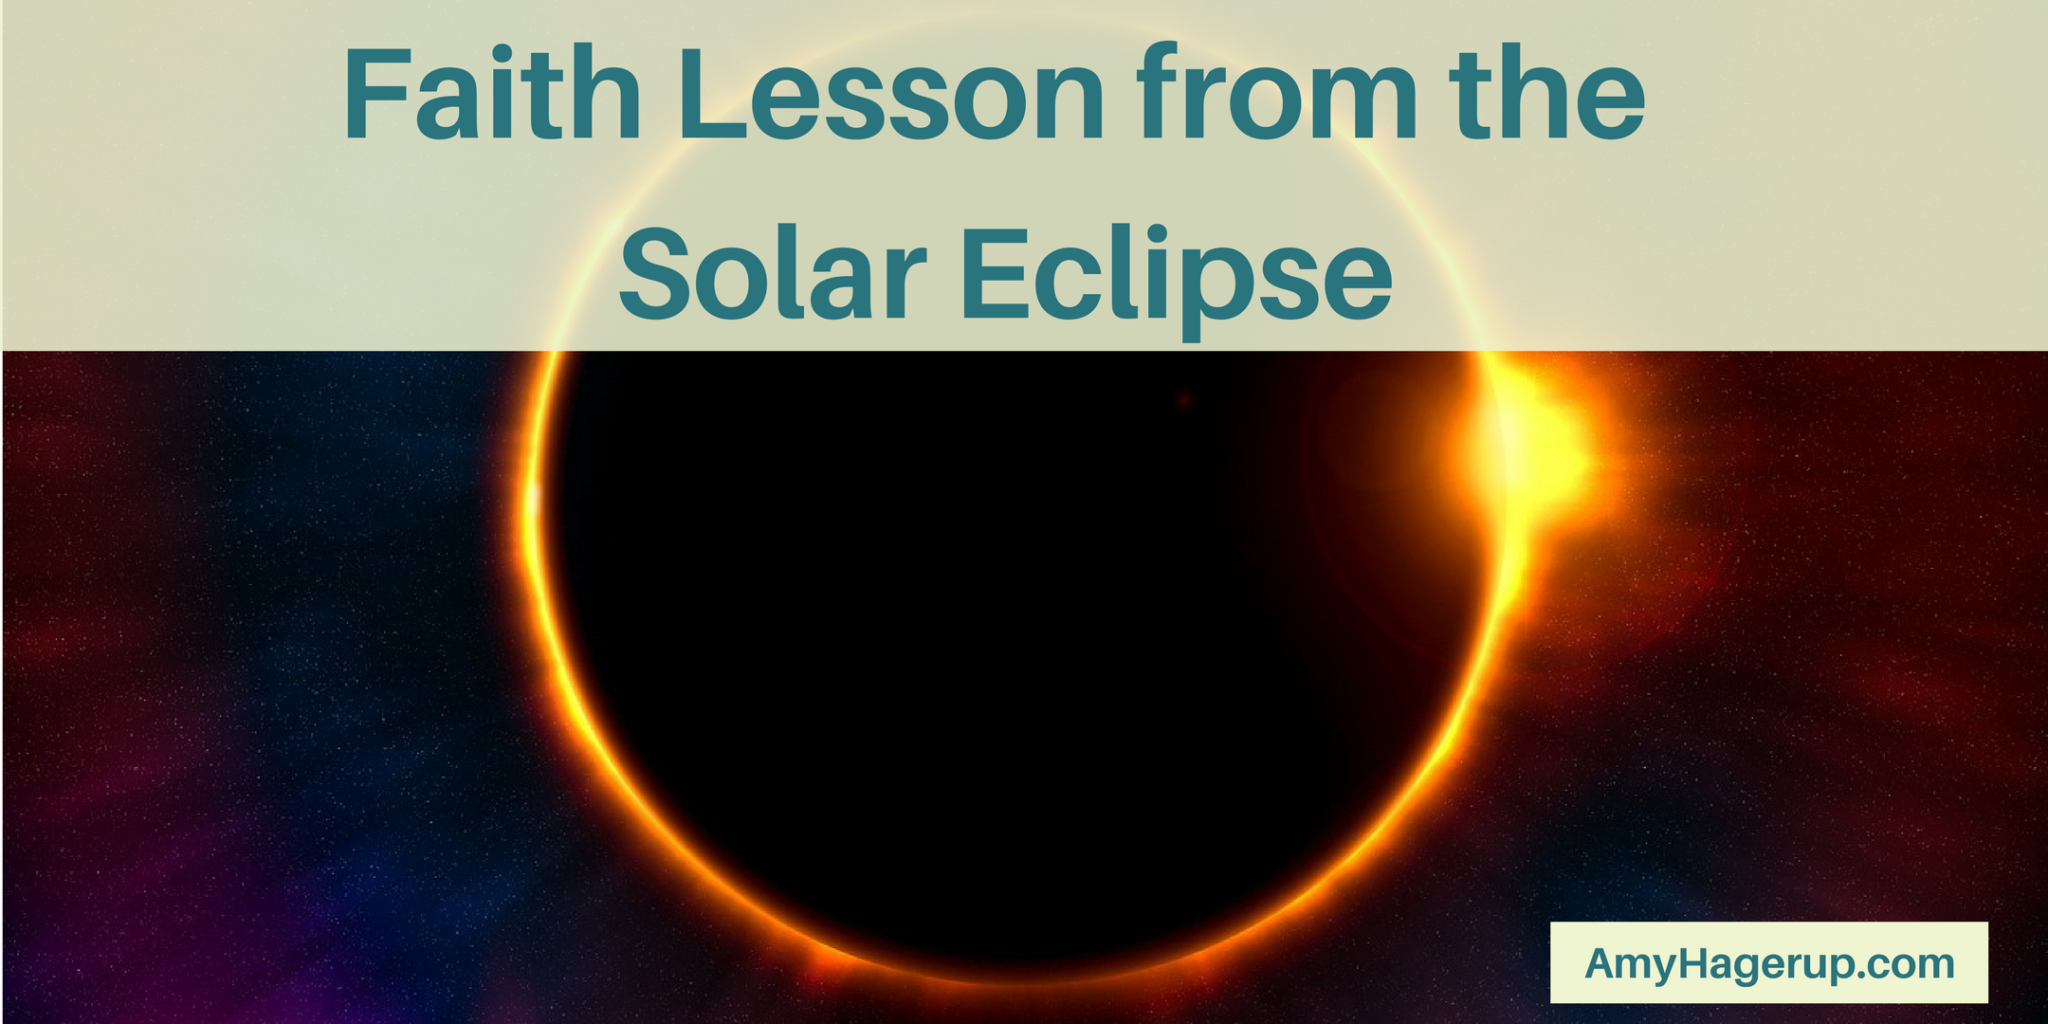 Check out this faith lesson from the solar eclipse.